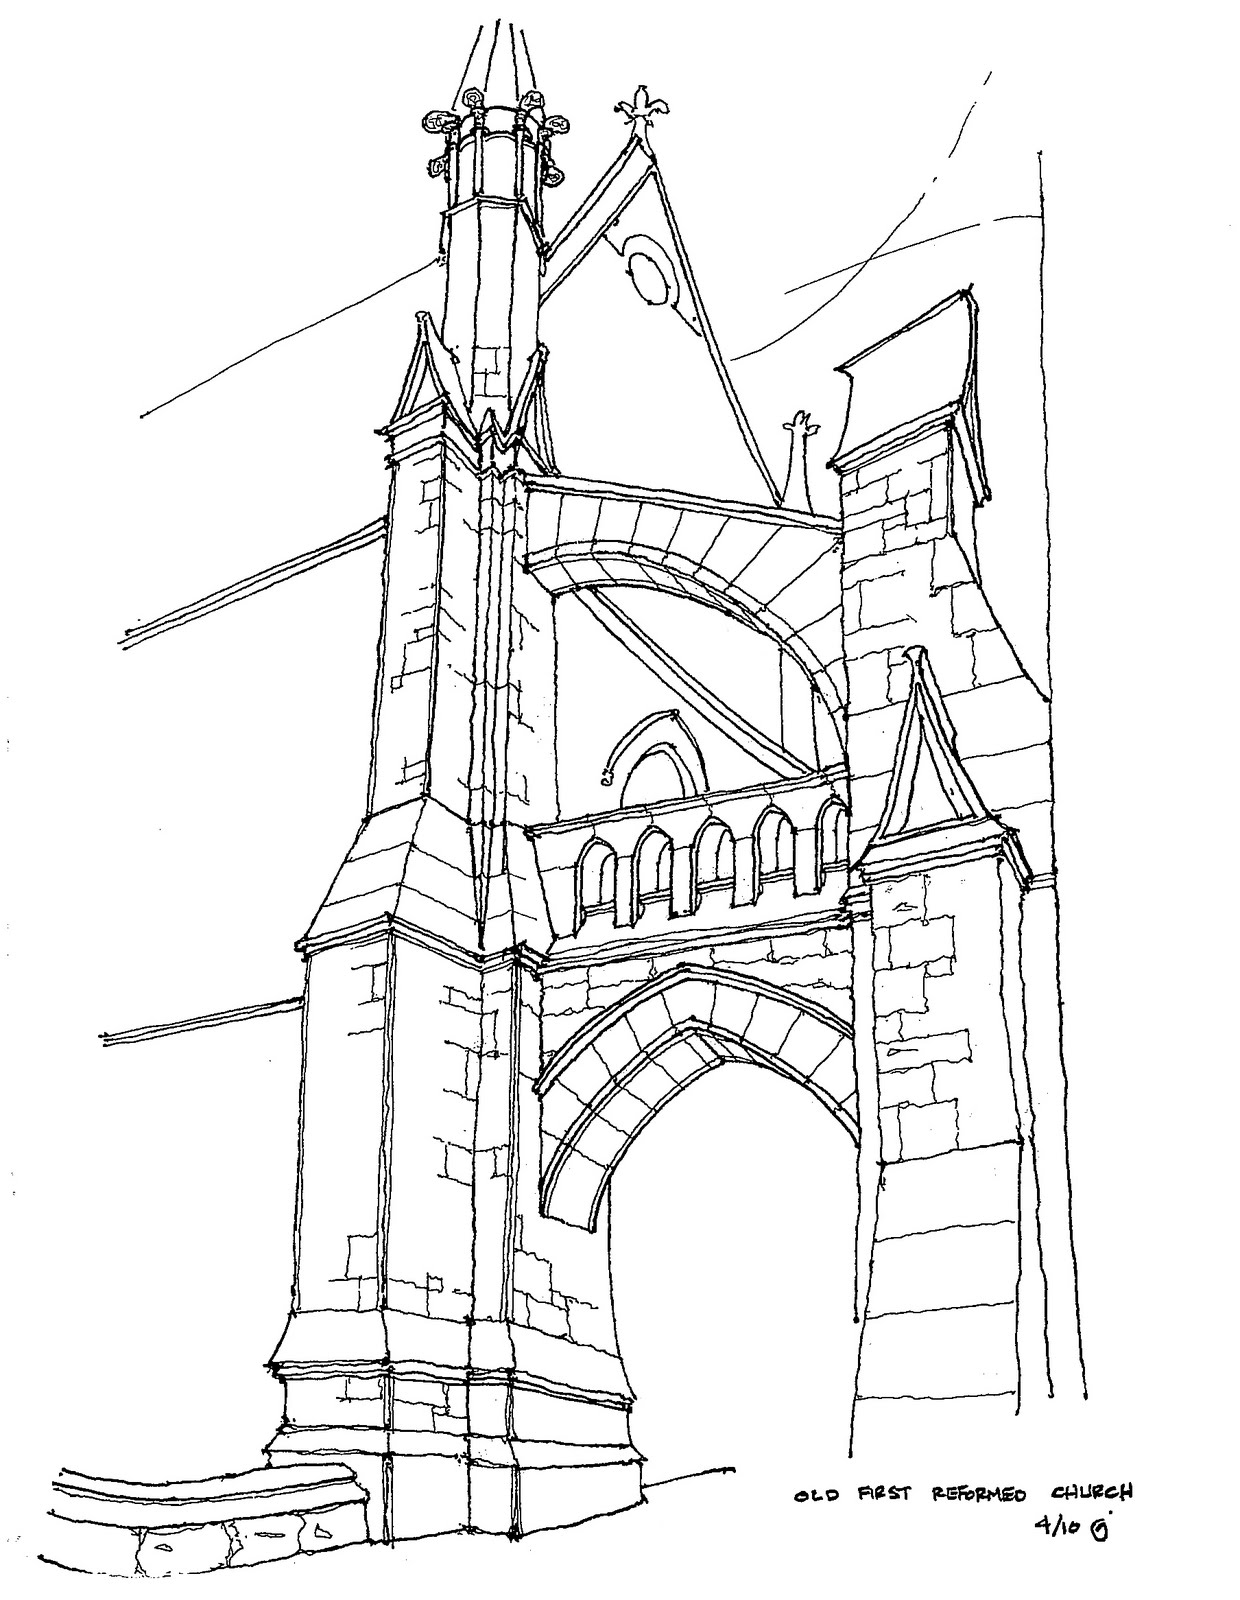 Park Slope Sketch Old First Reformed Church Buttress